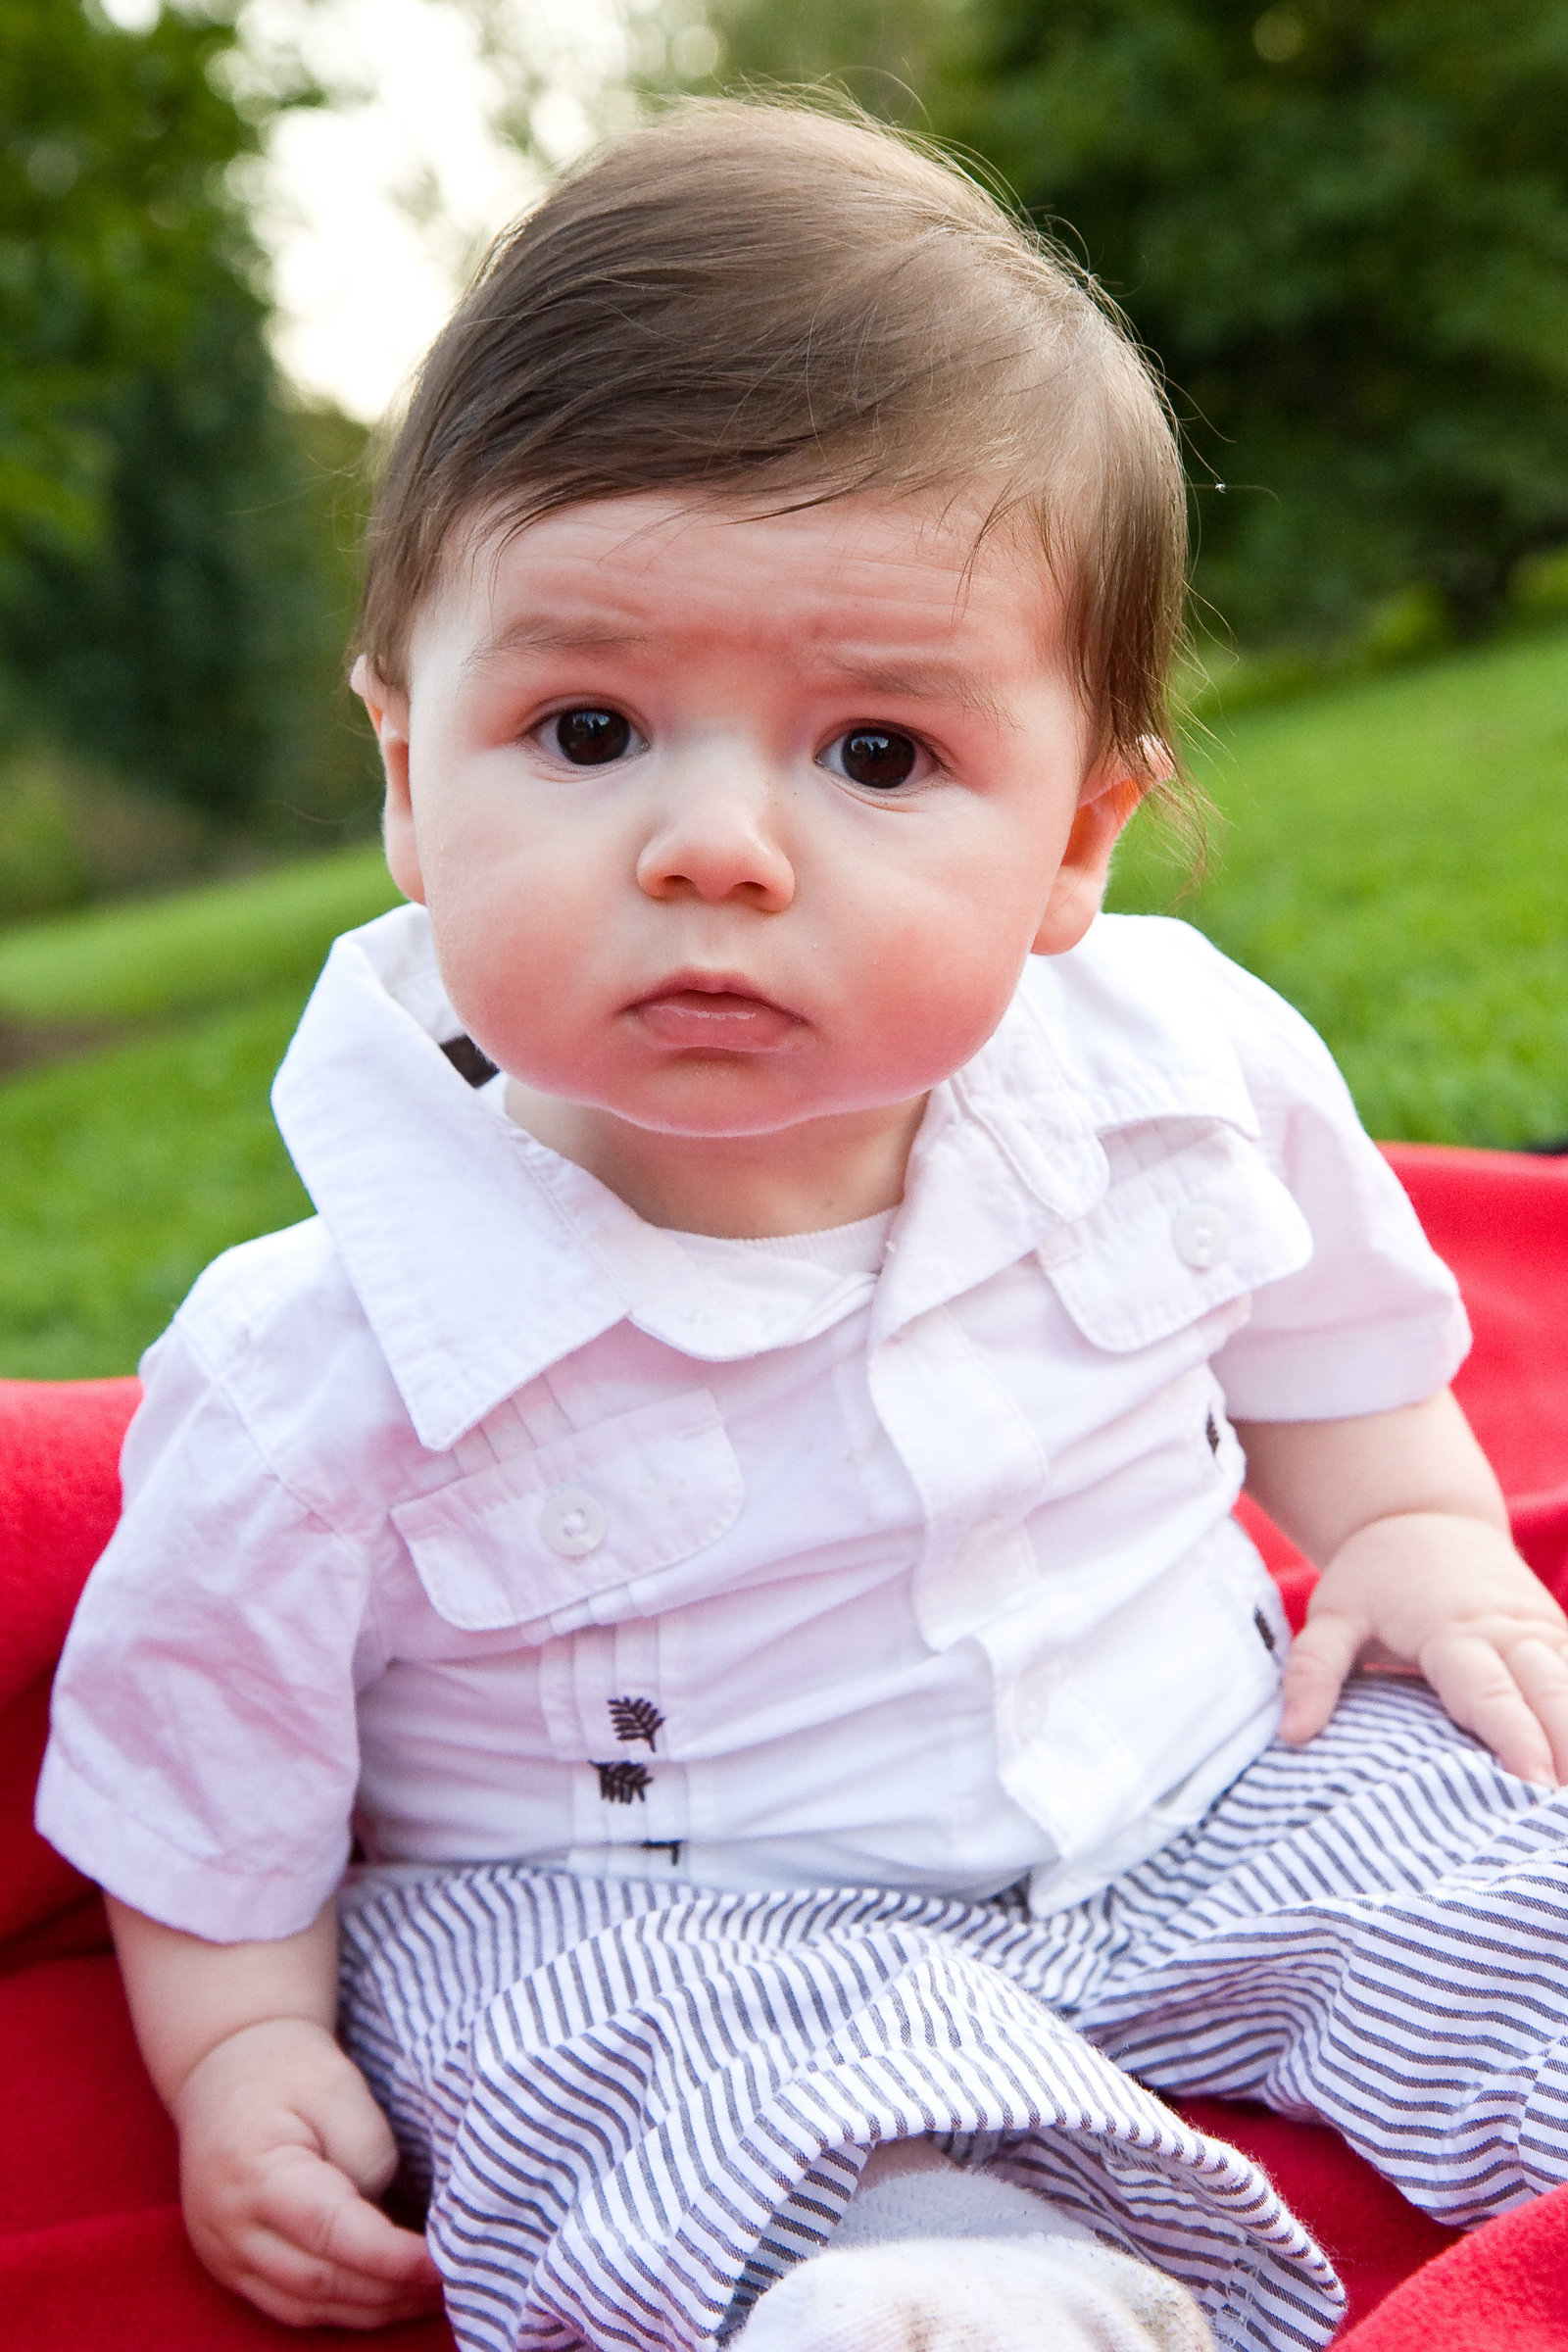 Baby portrait on red blanket in grass